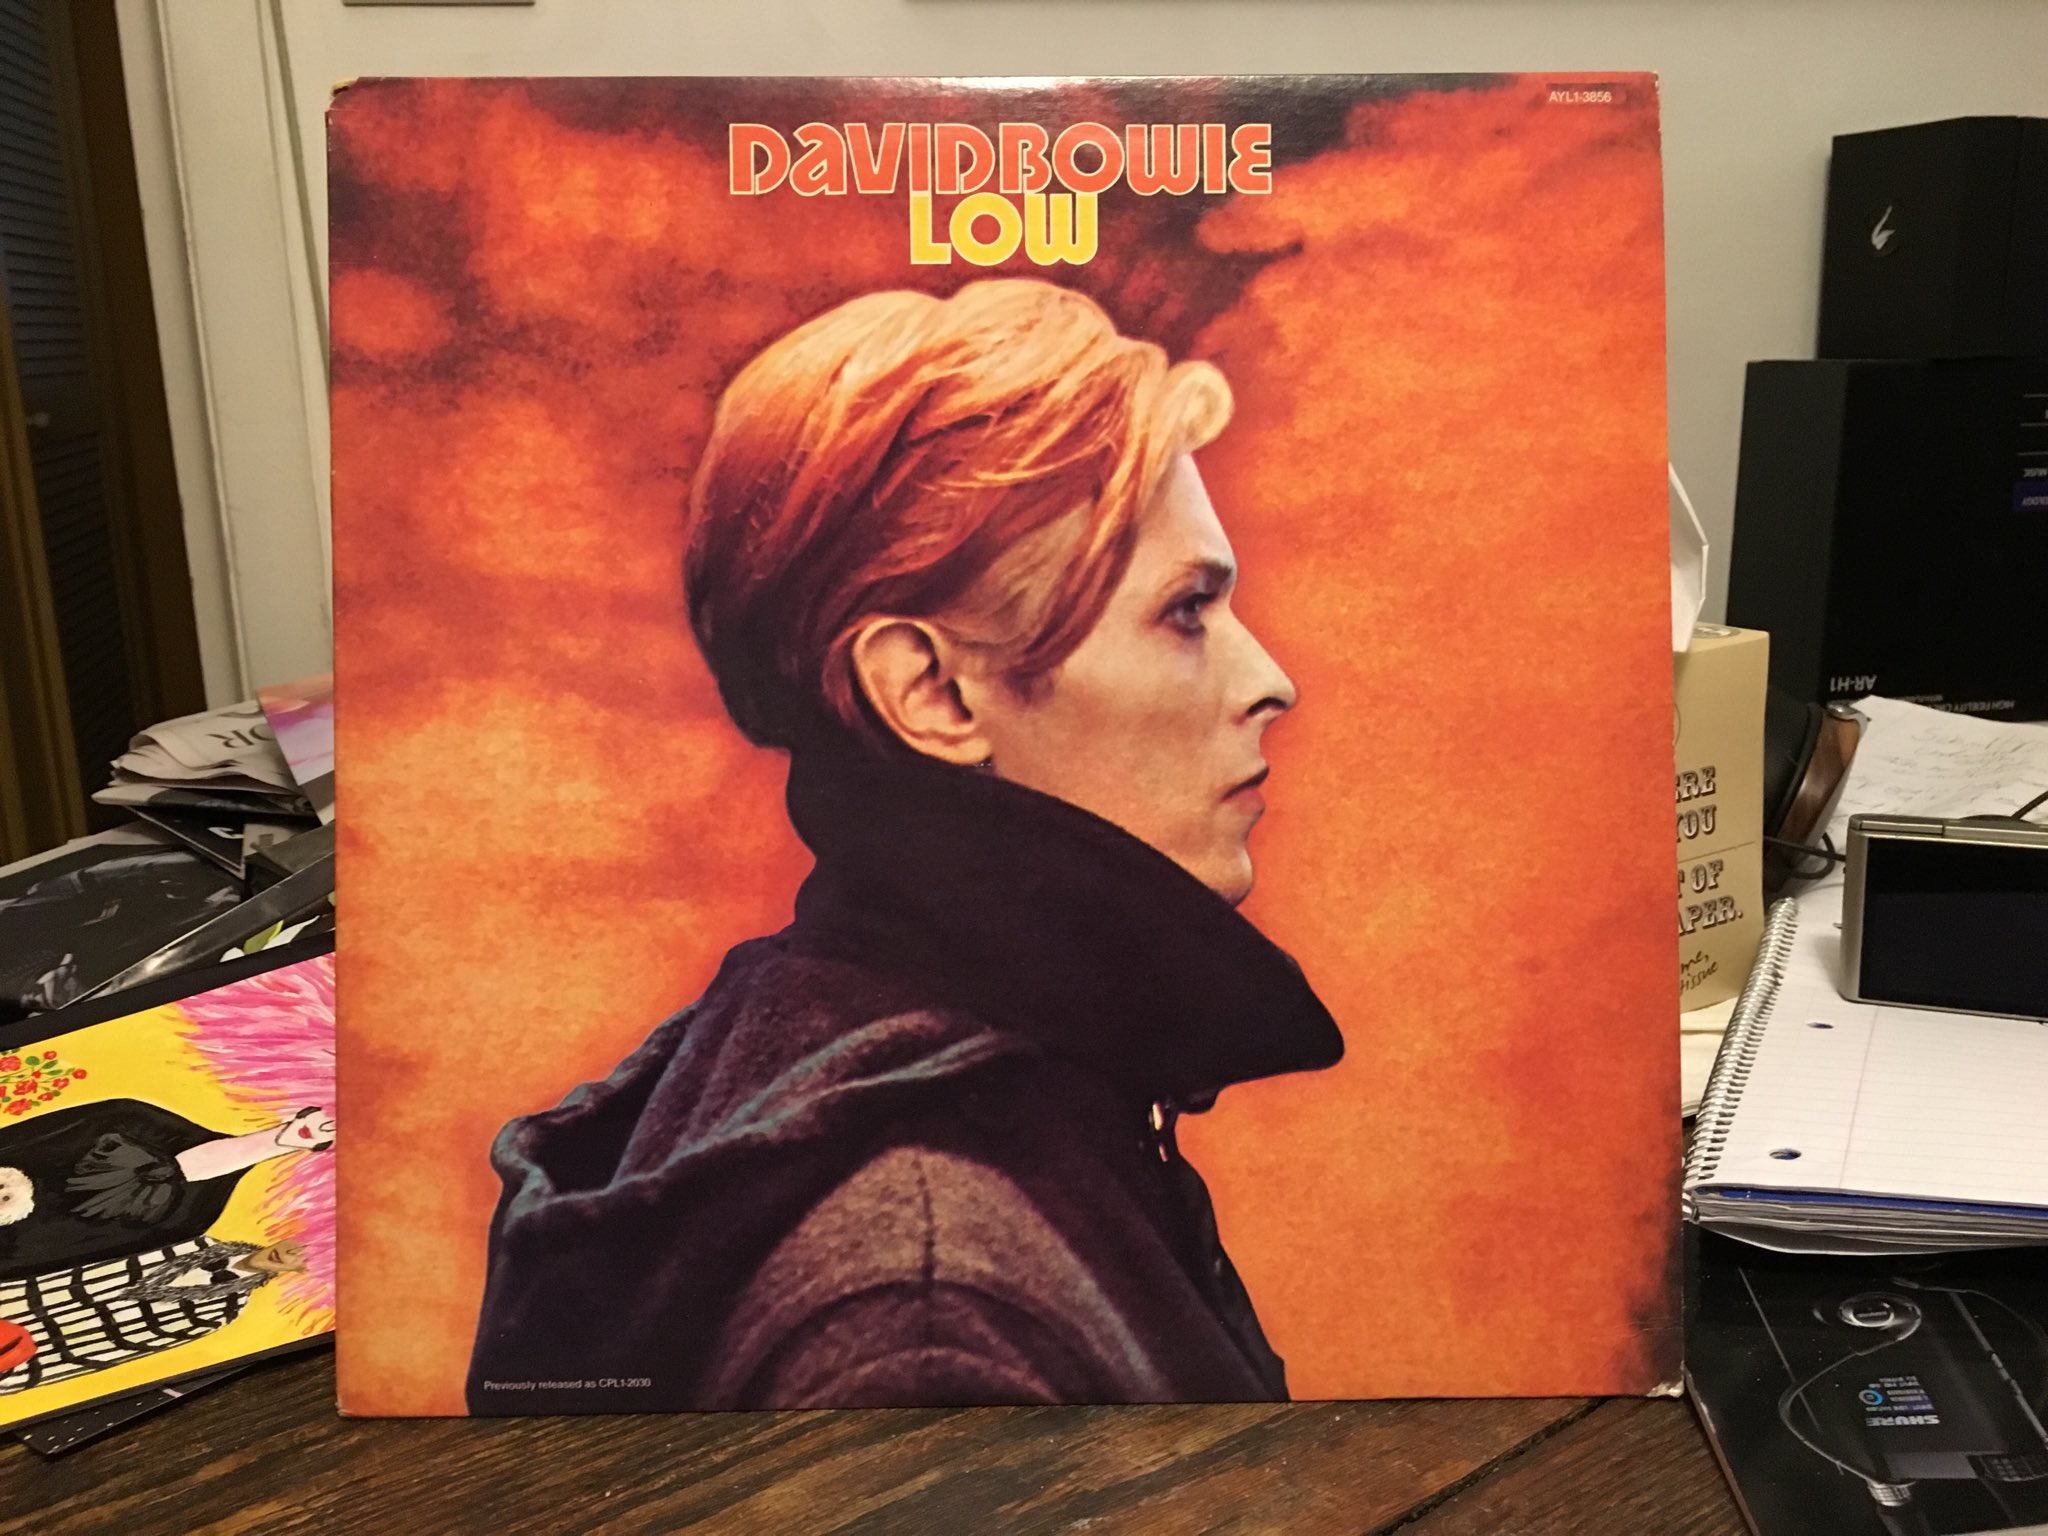 My fave Bowie album, BTW, working on my Bowie Is show at the #BrooklynMuseum story now. https://t.co/M6LtzpbDbH